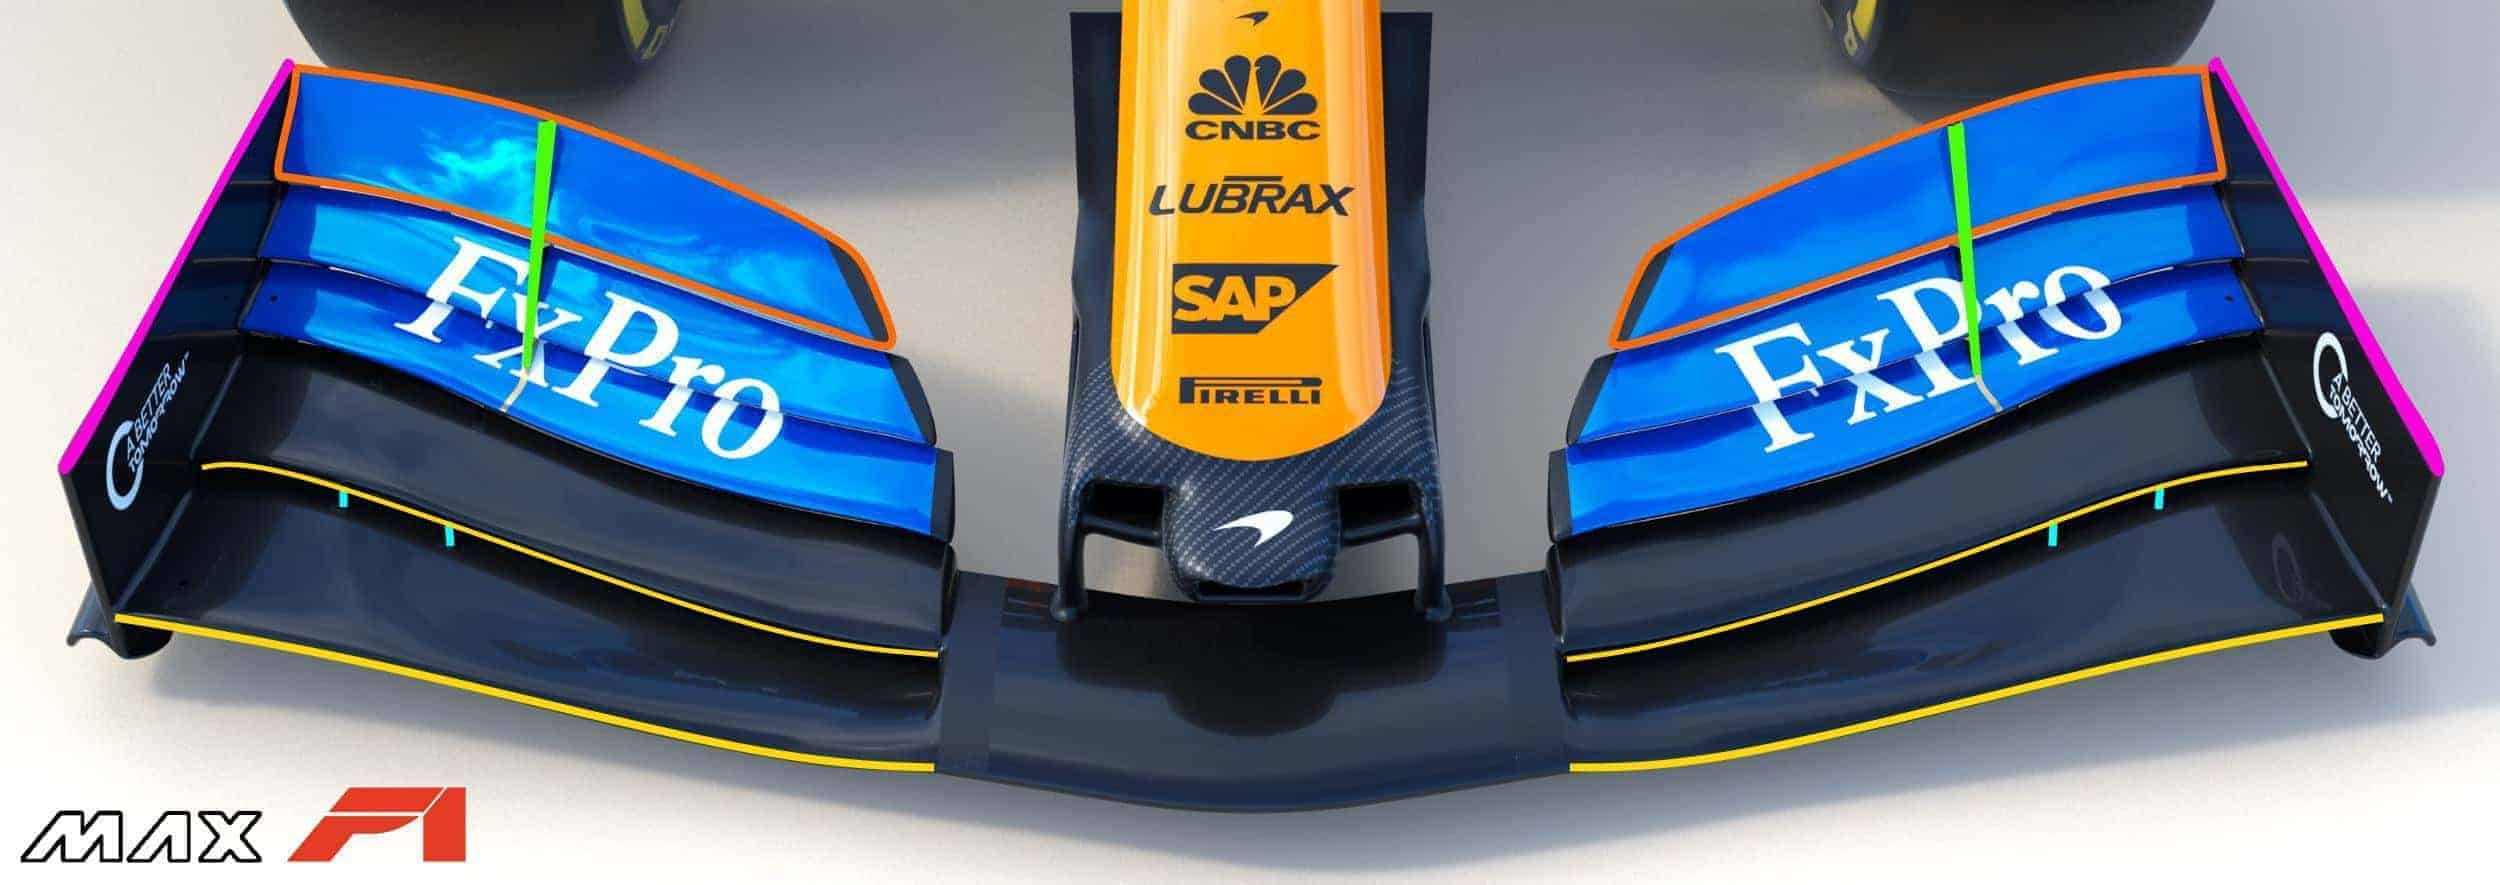 2019 McLaren MCL34 front wing Photo McLaren Edited by MAXF1net